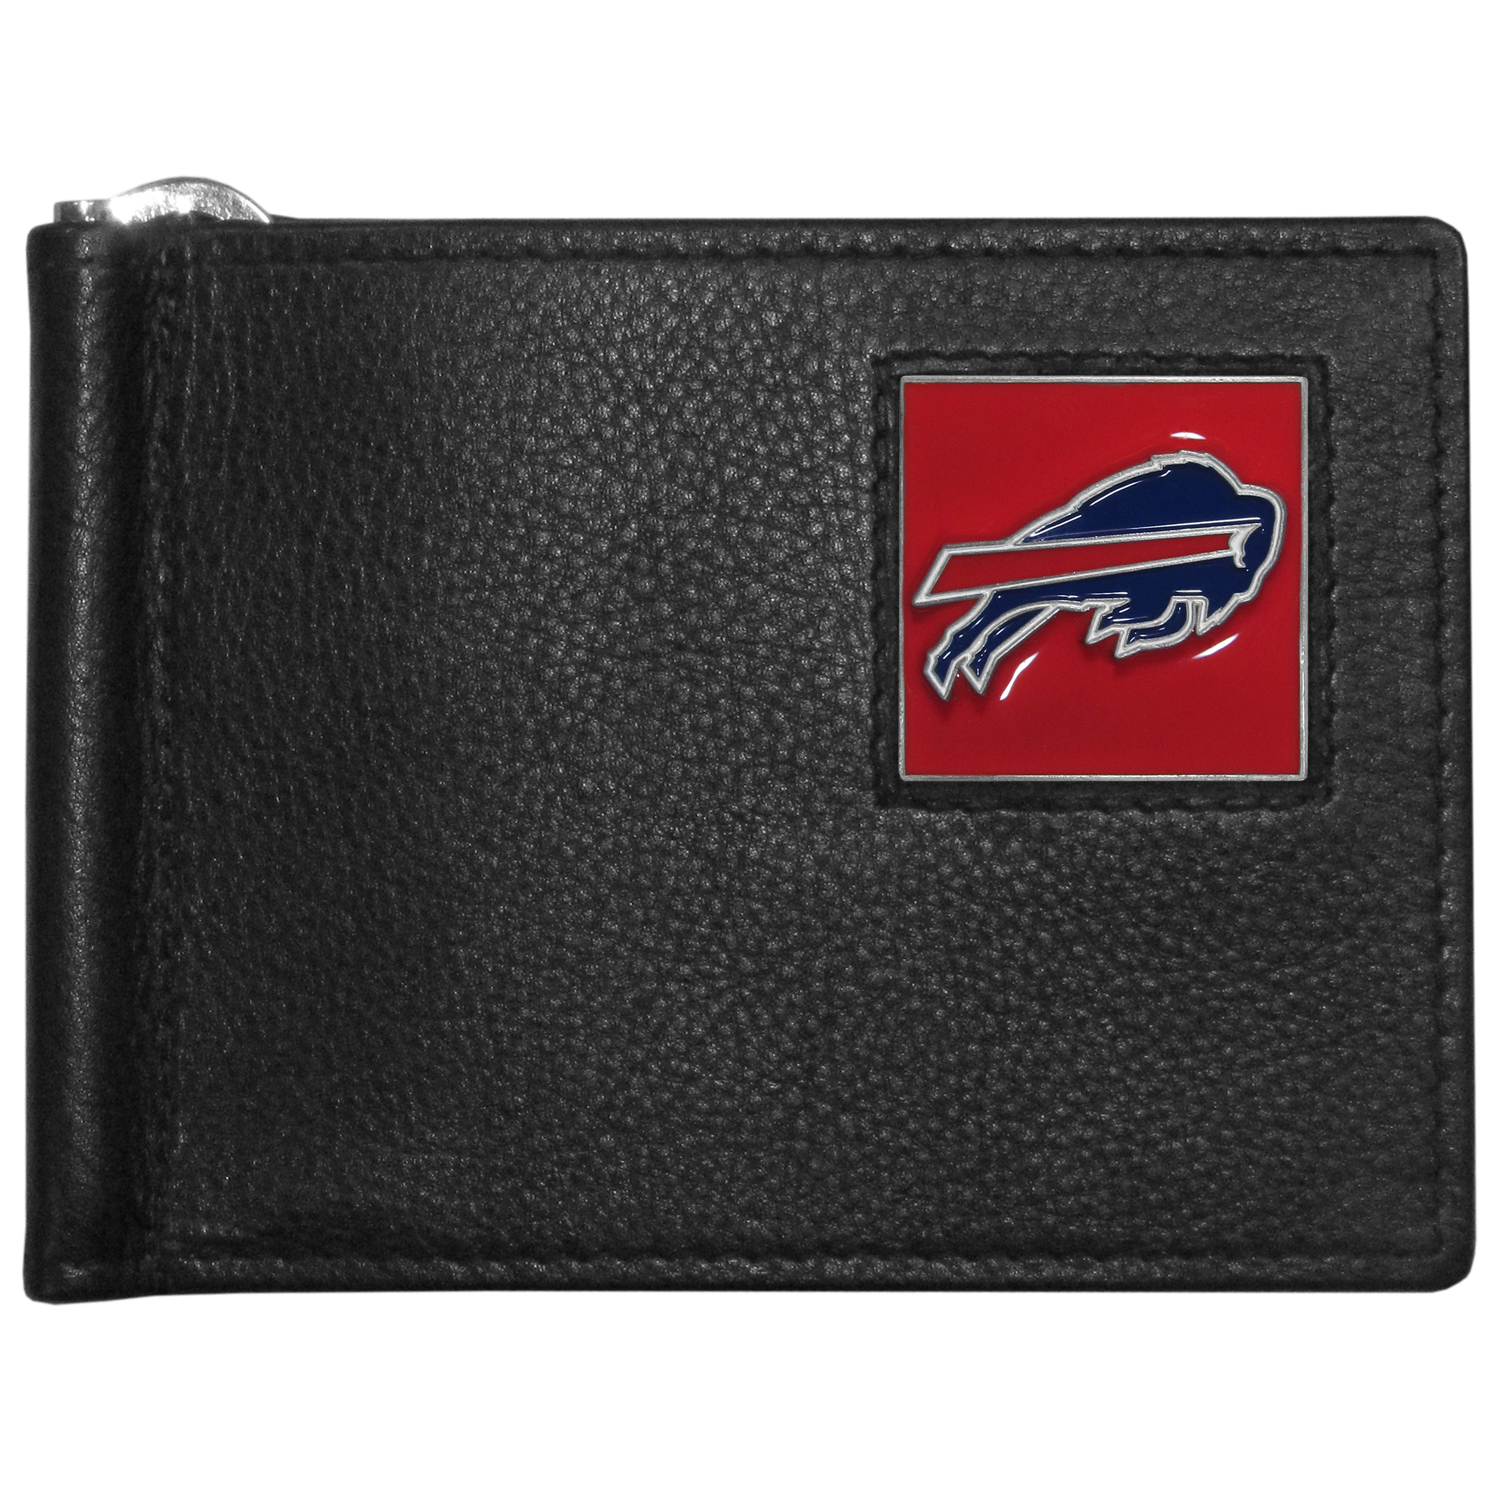 Buffalo Bills Leather Bill Clip Wallet - This cool new style wallet features an inner, metal bill clip that lips up for easy access. The super slim wallet holds tons of stuff with ample pockets, credit card slots & windowed ID slot.  The wallet is made of genuine fine grain leather and it finished with a metal Buffalo Bills emblem. The wallet is shipped in gift box packaging.